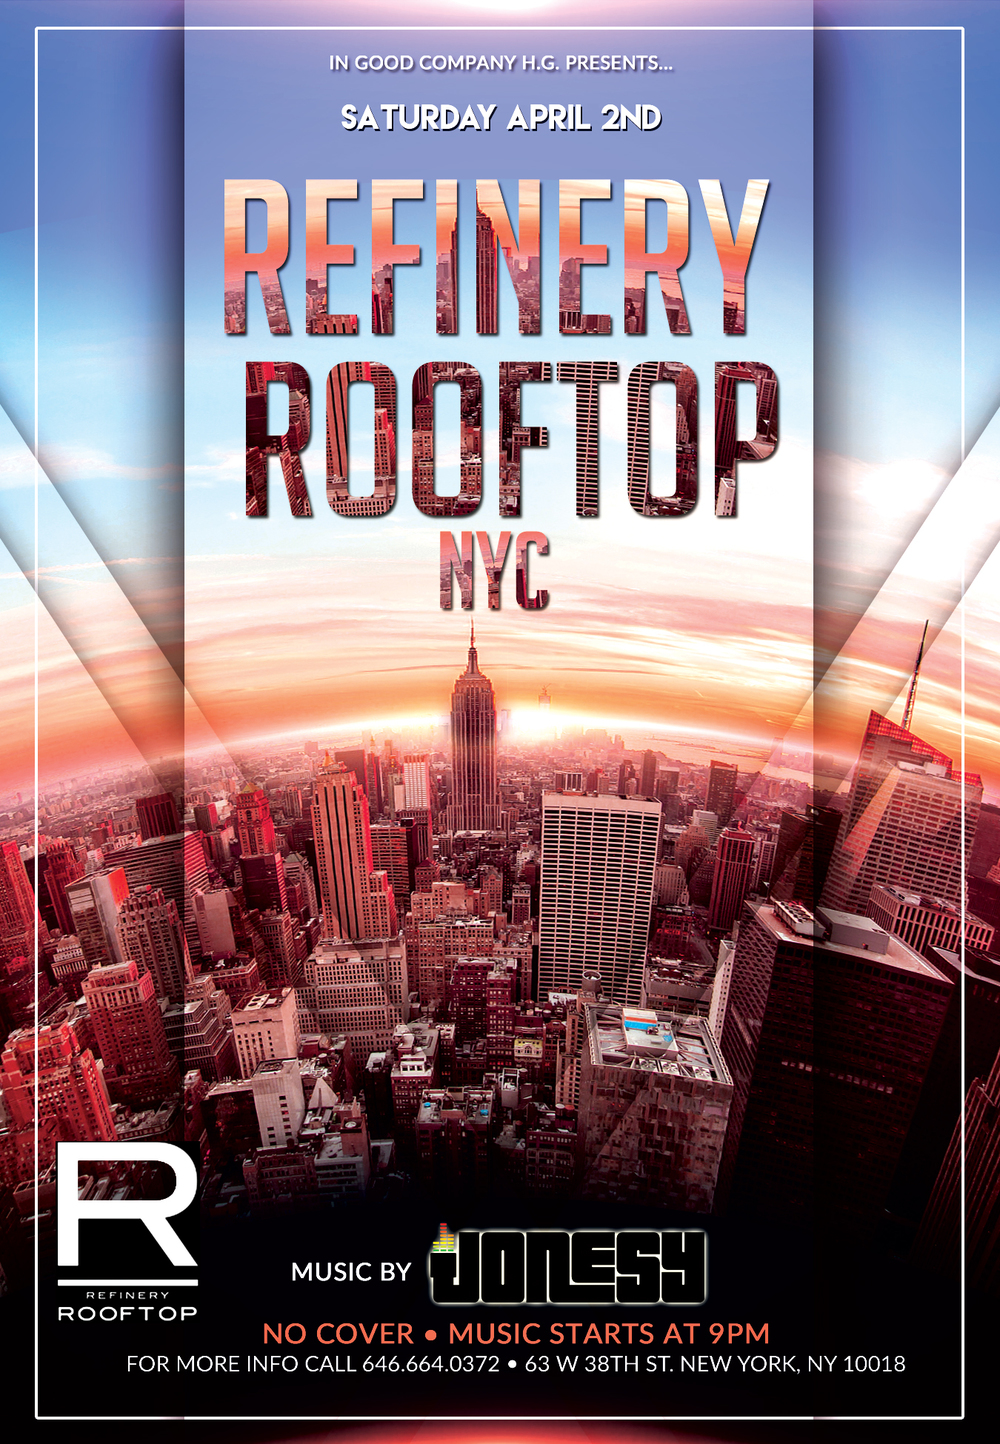 SATURDAY, APRIL 2ND JOIN US AT REFINERY ROOFTOP NYC FOR MUSIC BY YOURS TRULY 9PM - CLOSE.  GORGEOUS ROOFTOP VIEWS OF THE EMPIRE STATE BUILDING AND NYC SKYLINE + TOP SHELF DRINKS + GREAT MUSIC.  NO COVER, DRESS TO IMPRES.